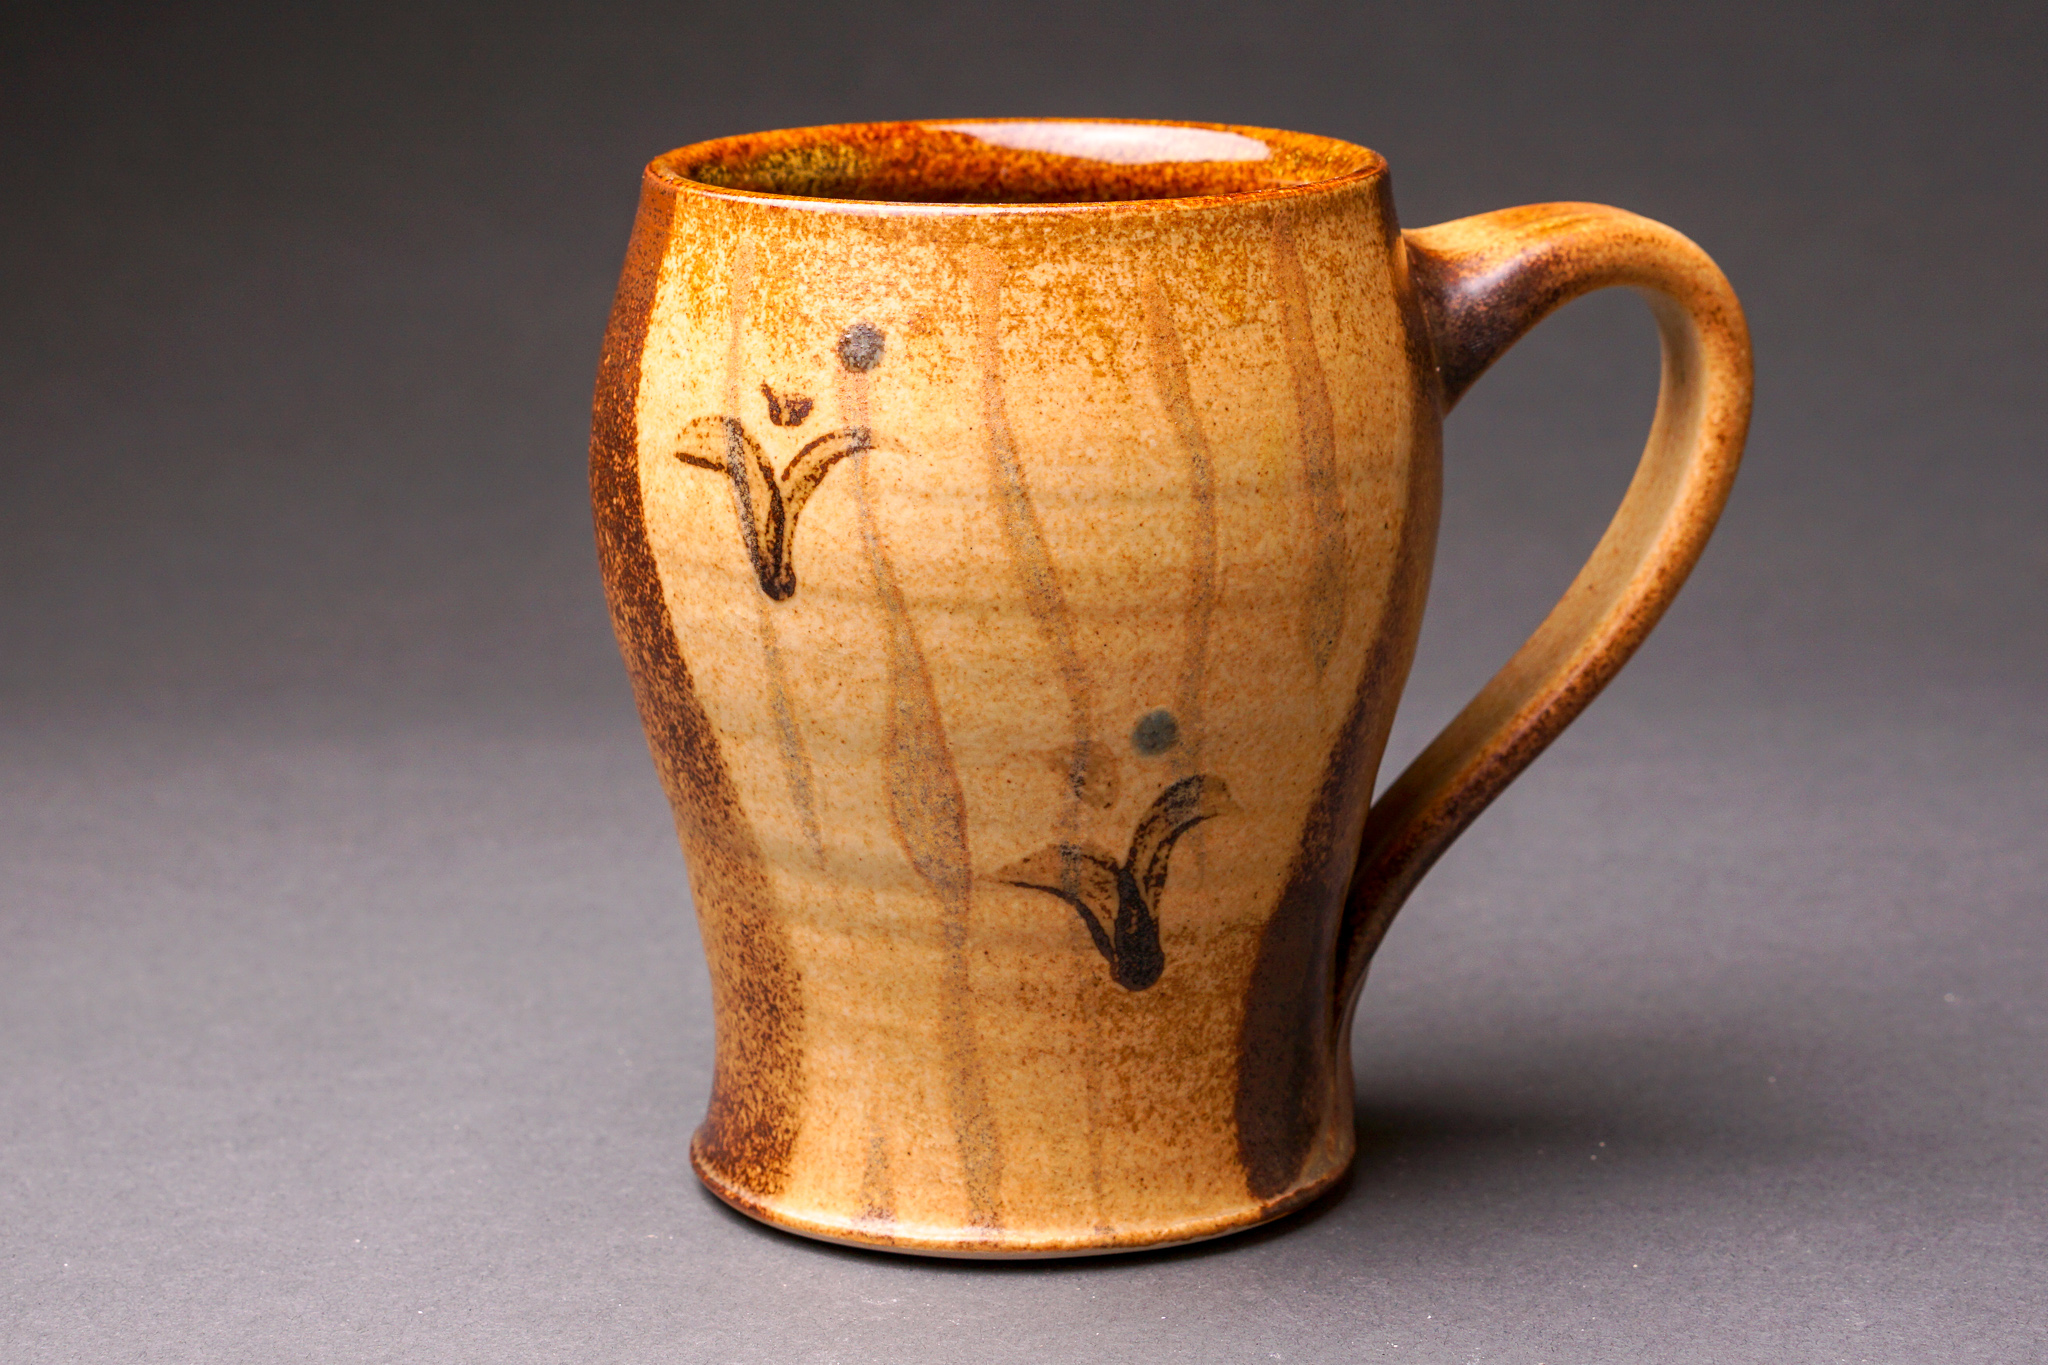 Mugs, Cups and Dishes - Pottery for the Table